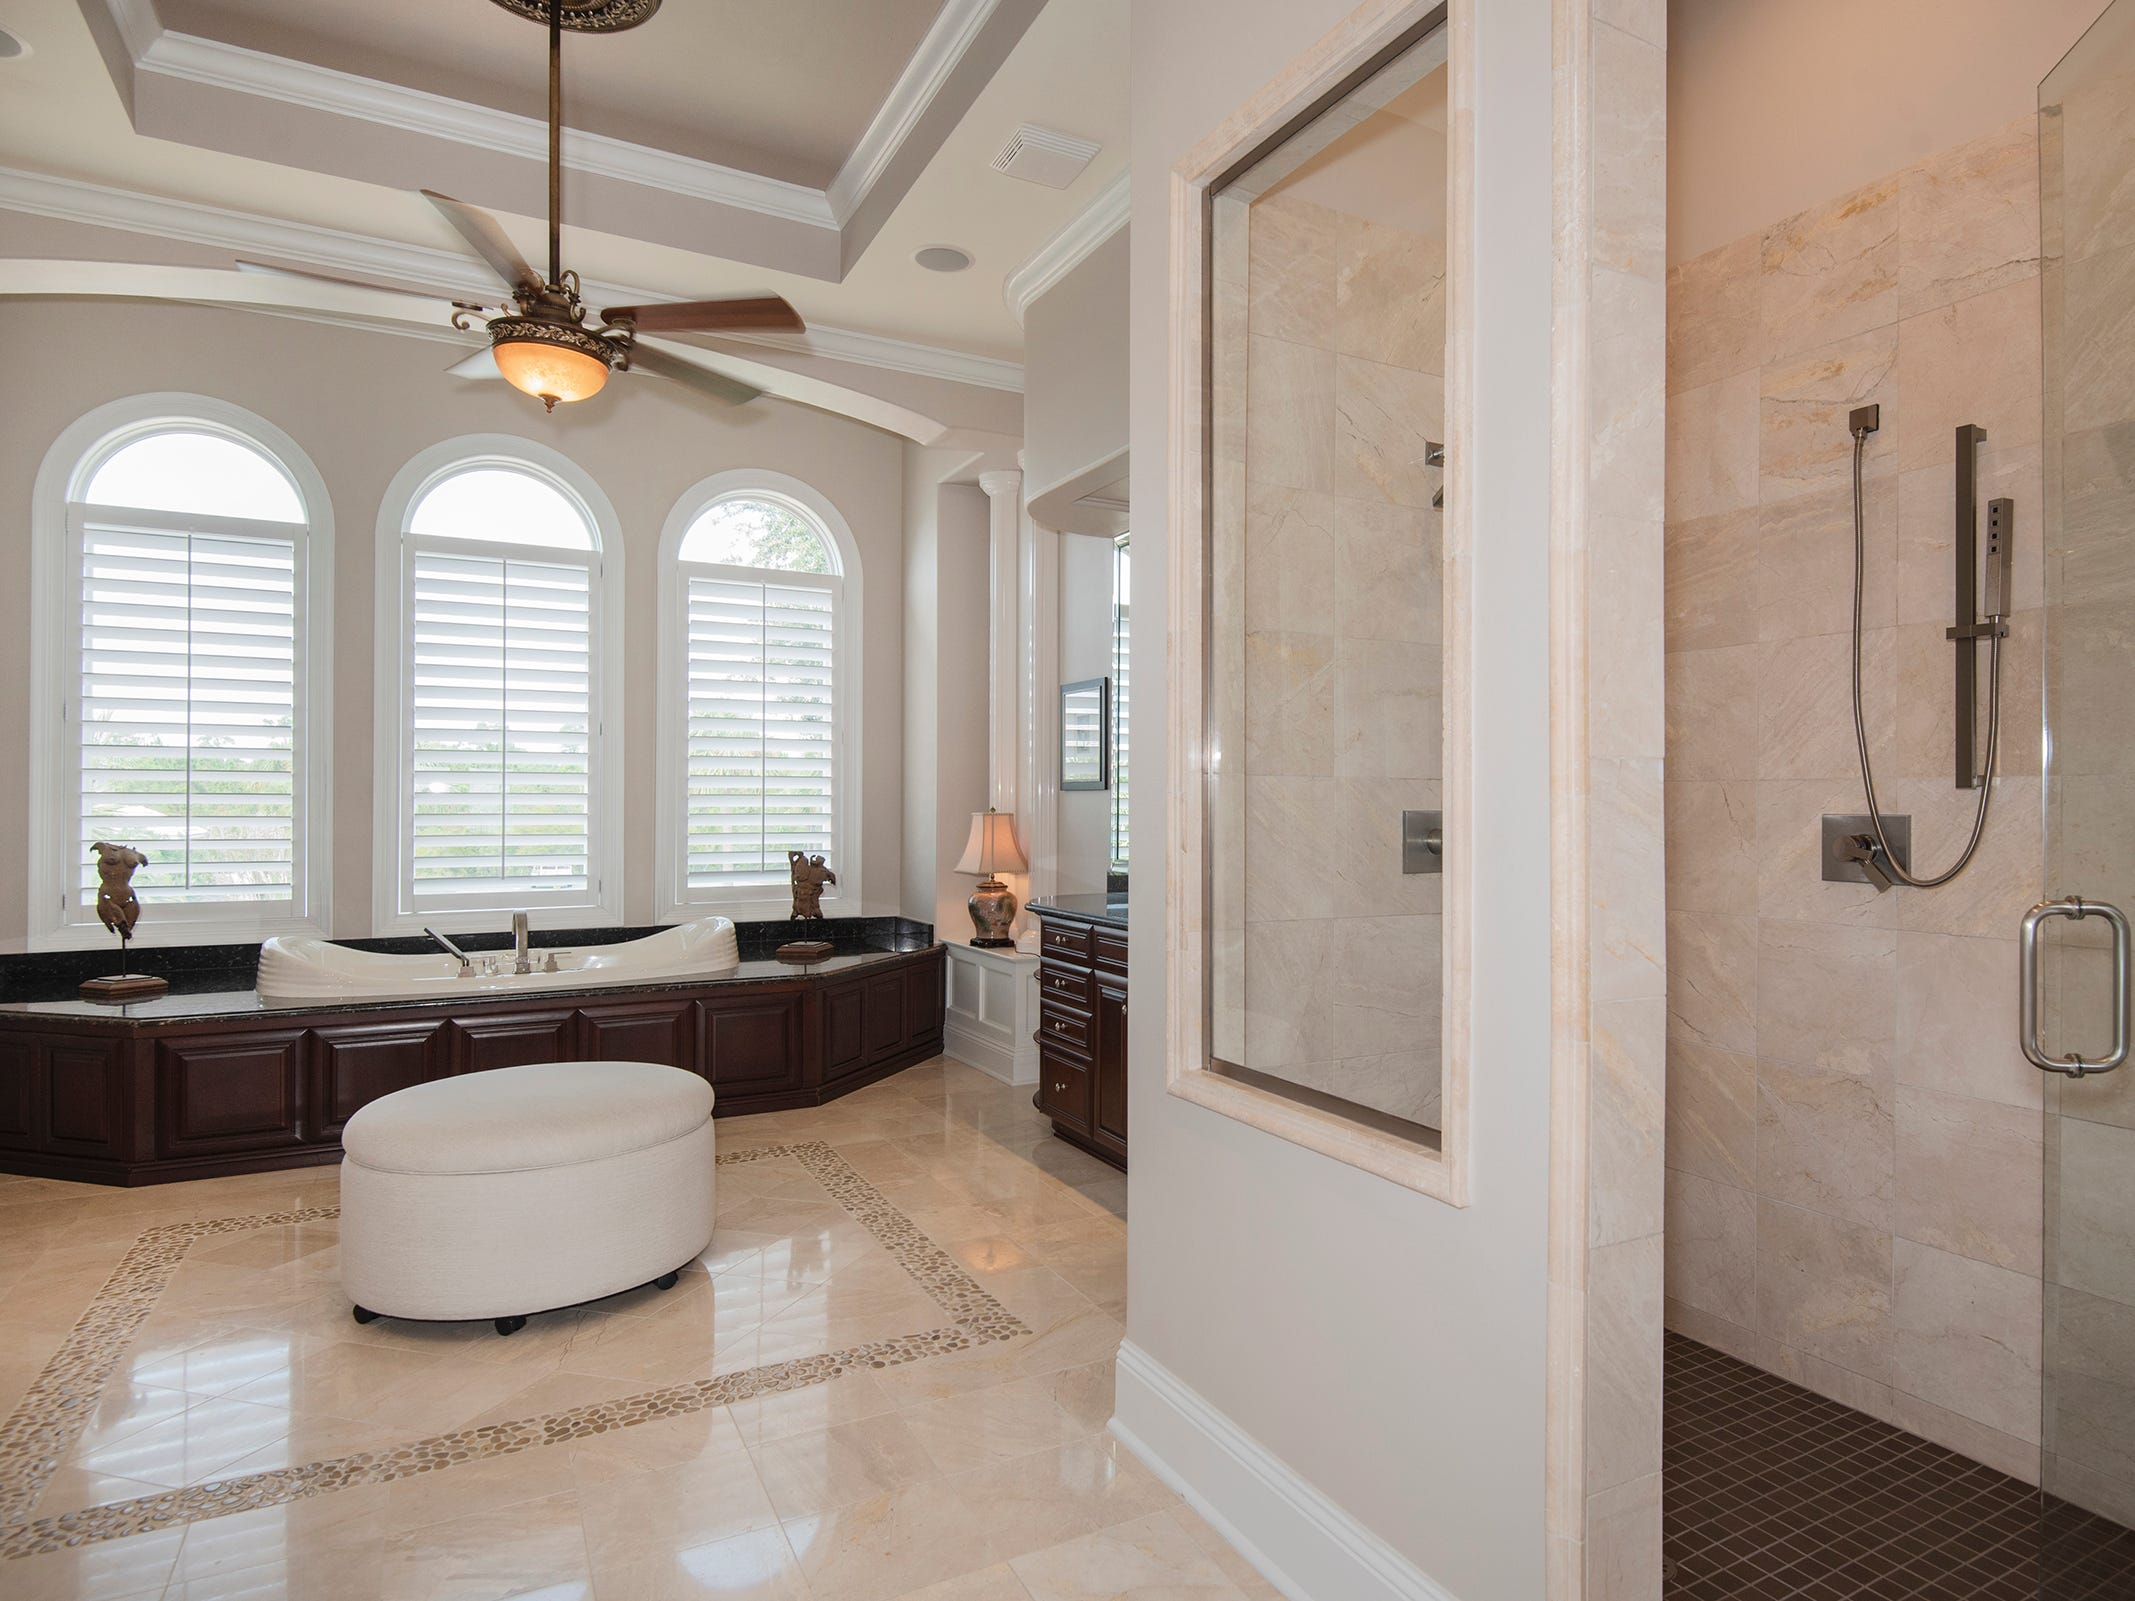 5 Colley CoveA walk-in shower and relaxing tub are found in the master bath.